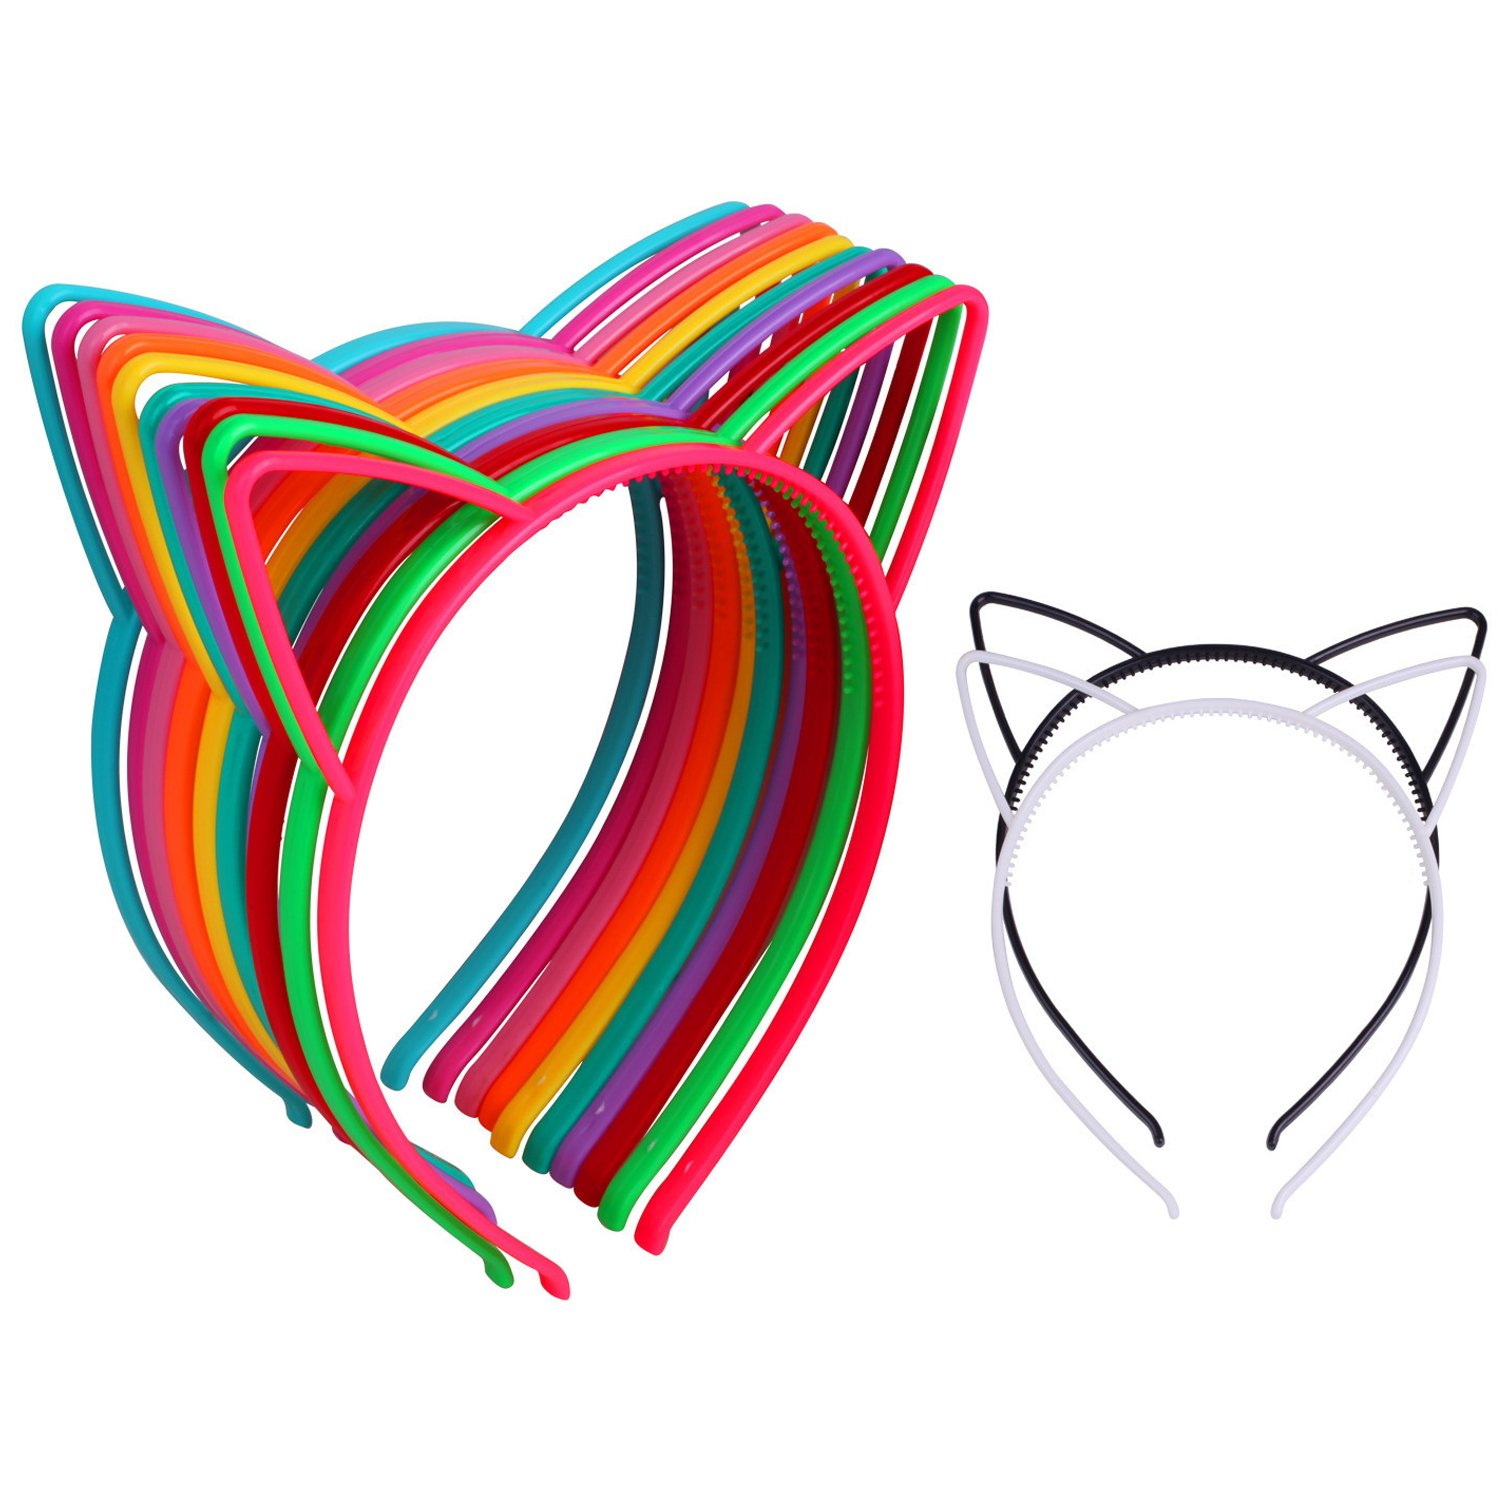 12Pcs Cat Ear Headbands Girl's Plastic Headbands Cat Bow Hairbands for Women and Girls, Costume Favors Accessories CH-02